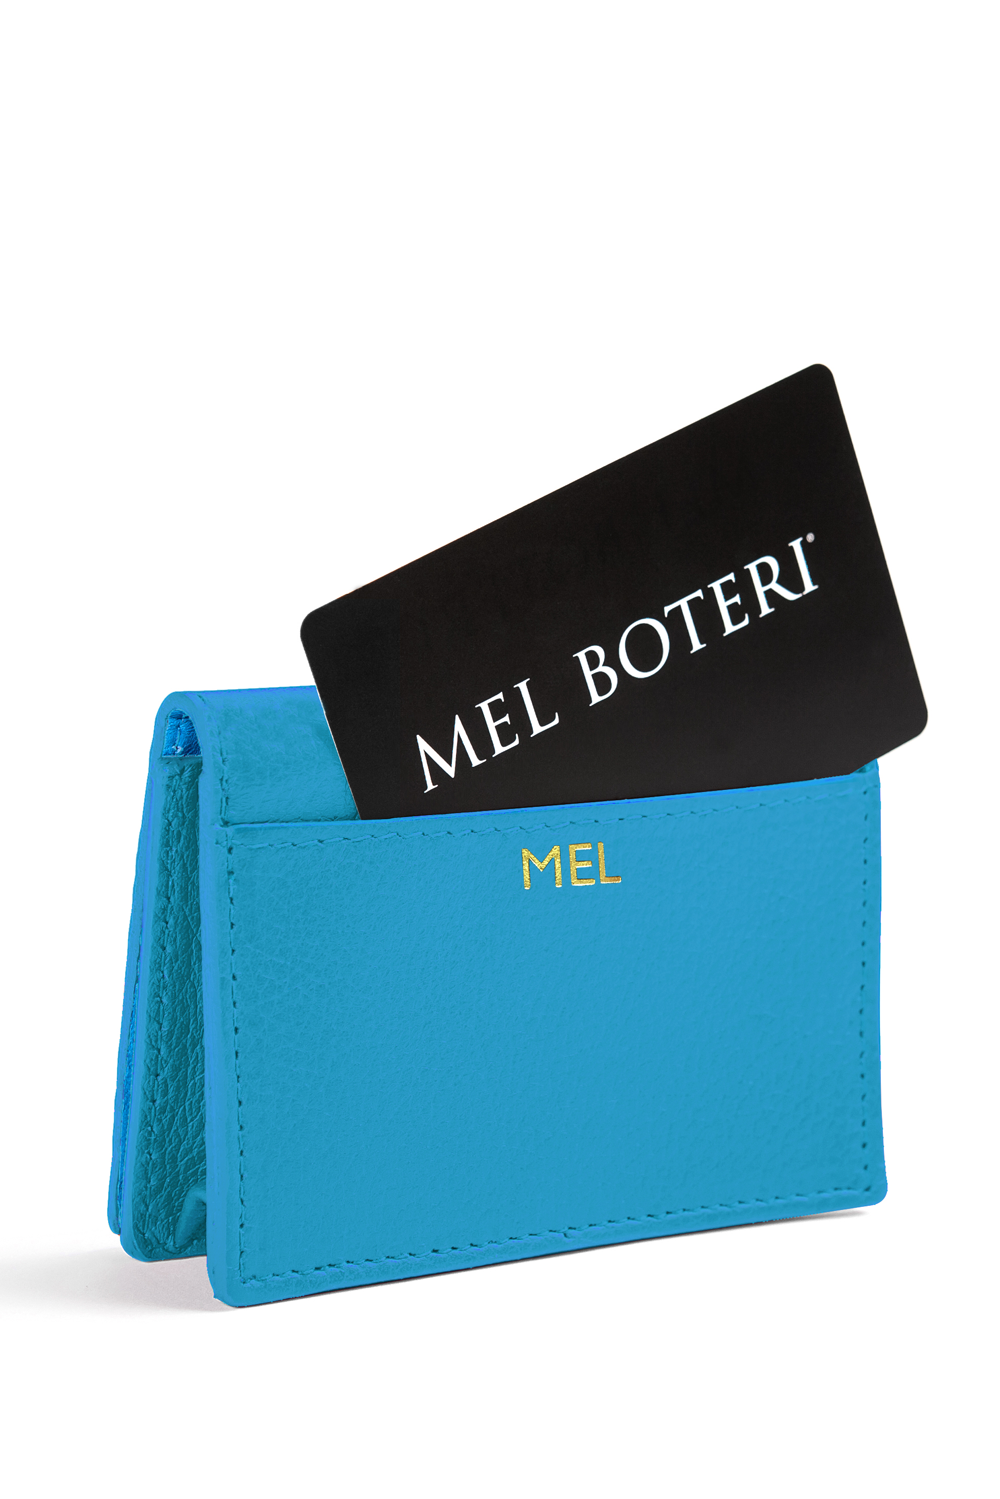 The Mel Boteri Leather Card Holder | Aqua Leather With Gold Monogram | Mel Boteri Gift Ideas | Design Your Own